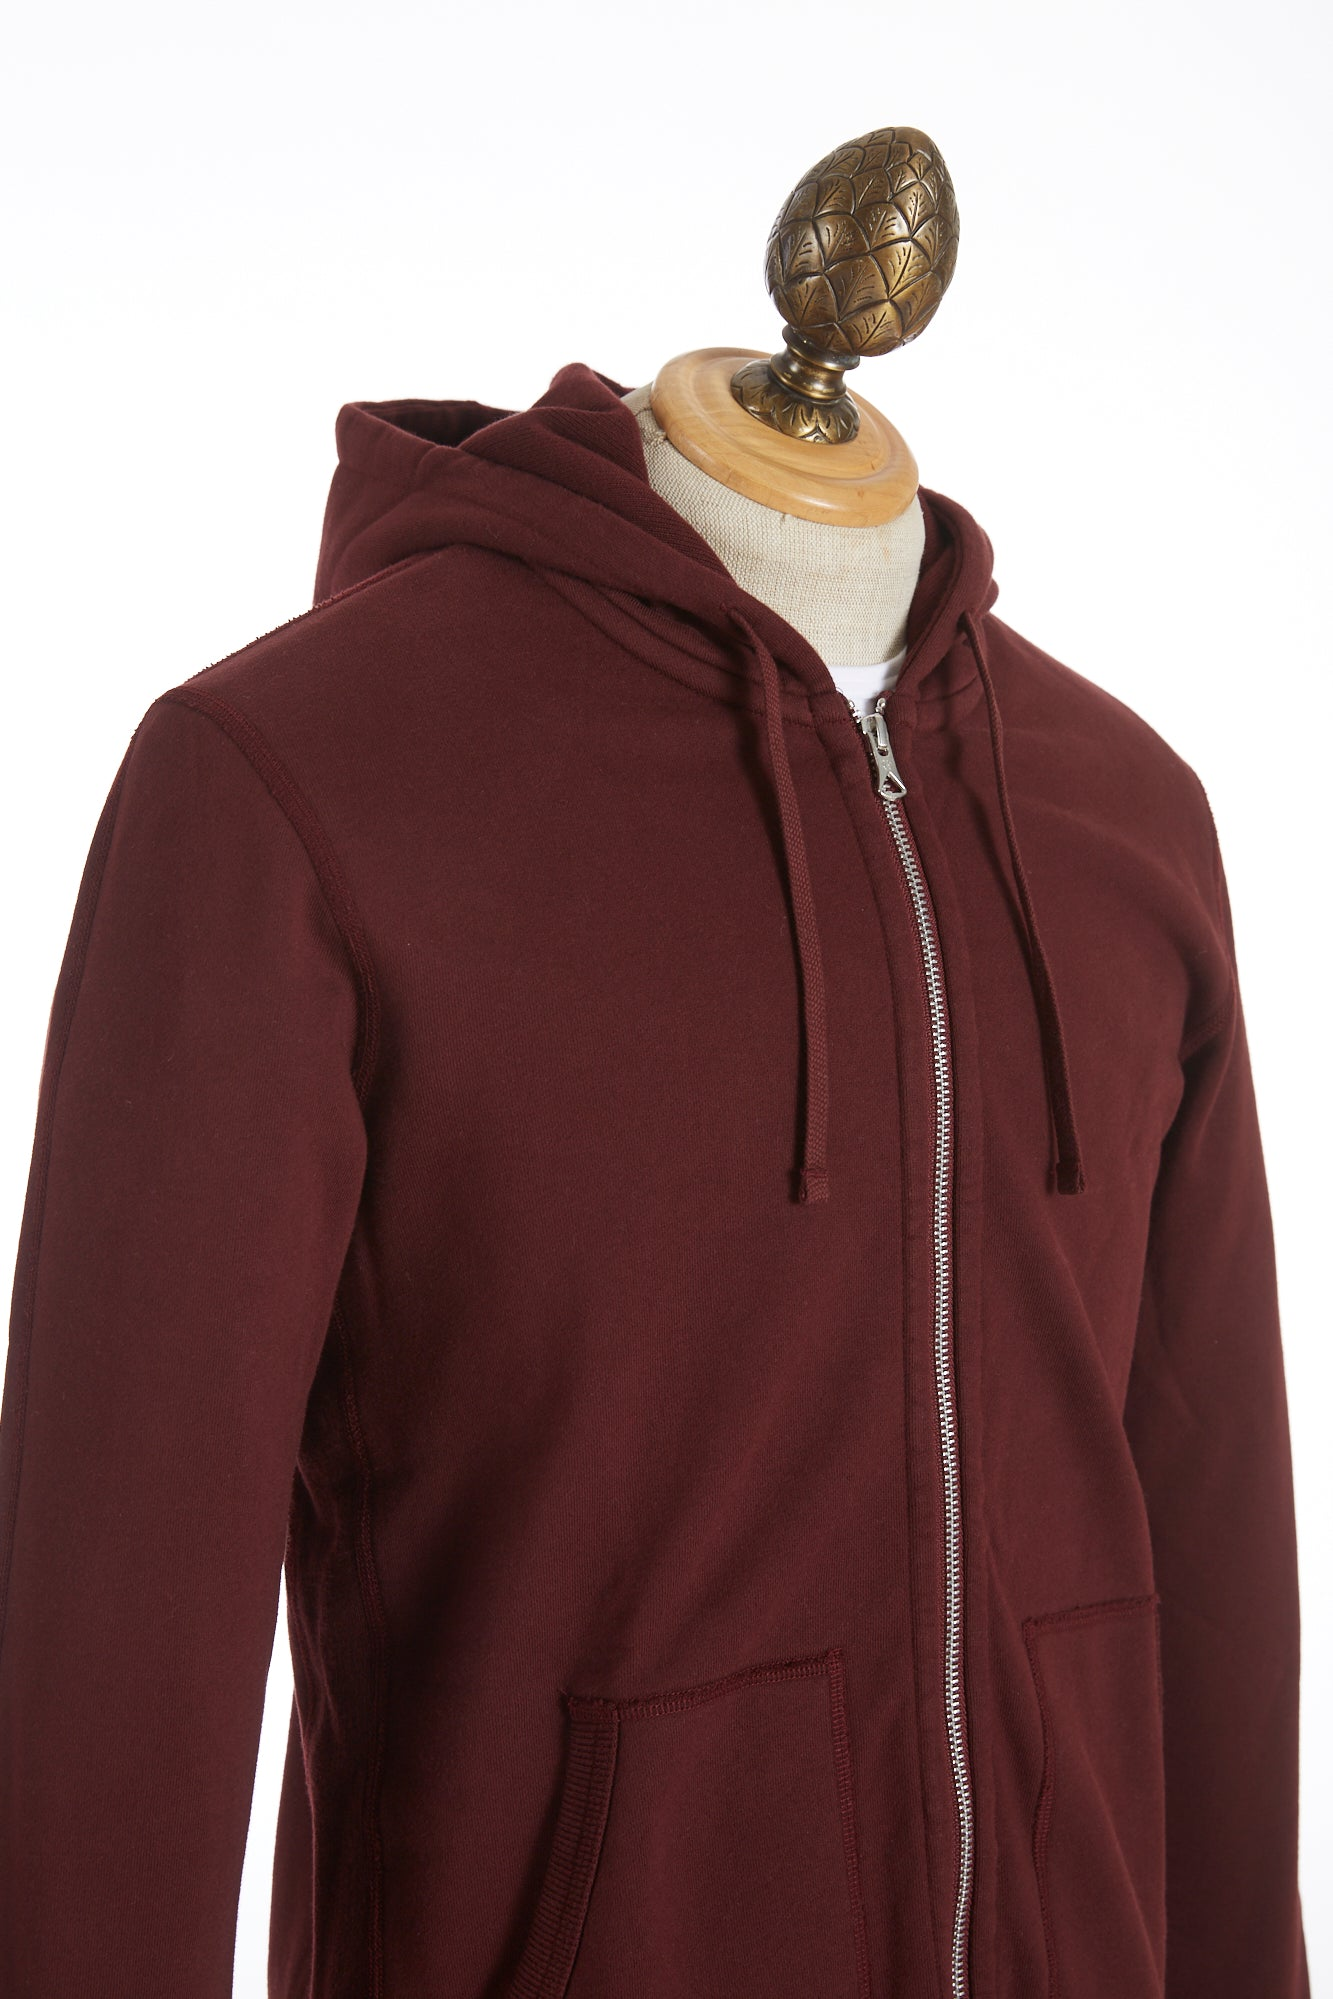 Reigning Champ Crimson Red Full-Zip Hoodie Sweater